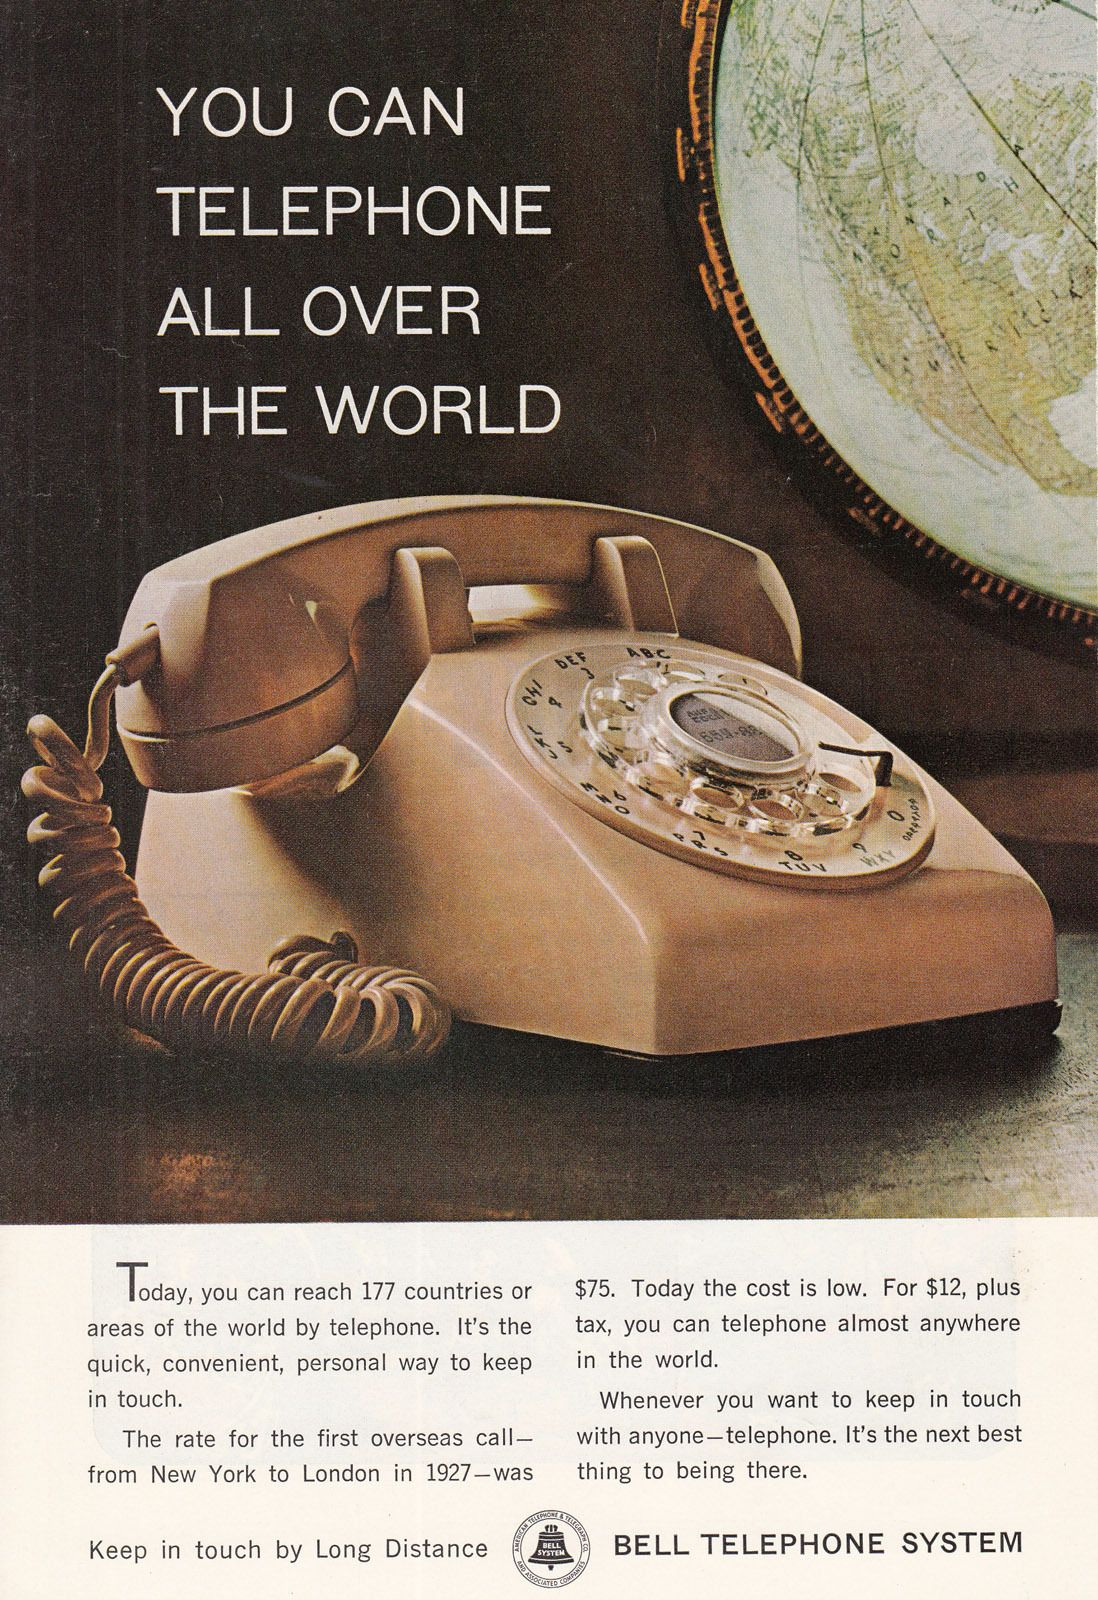 While the touch tone phone service was introduced in the 1960s - the